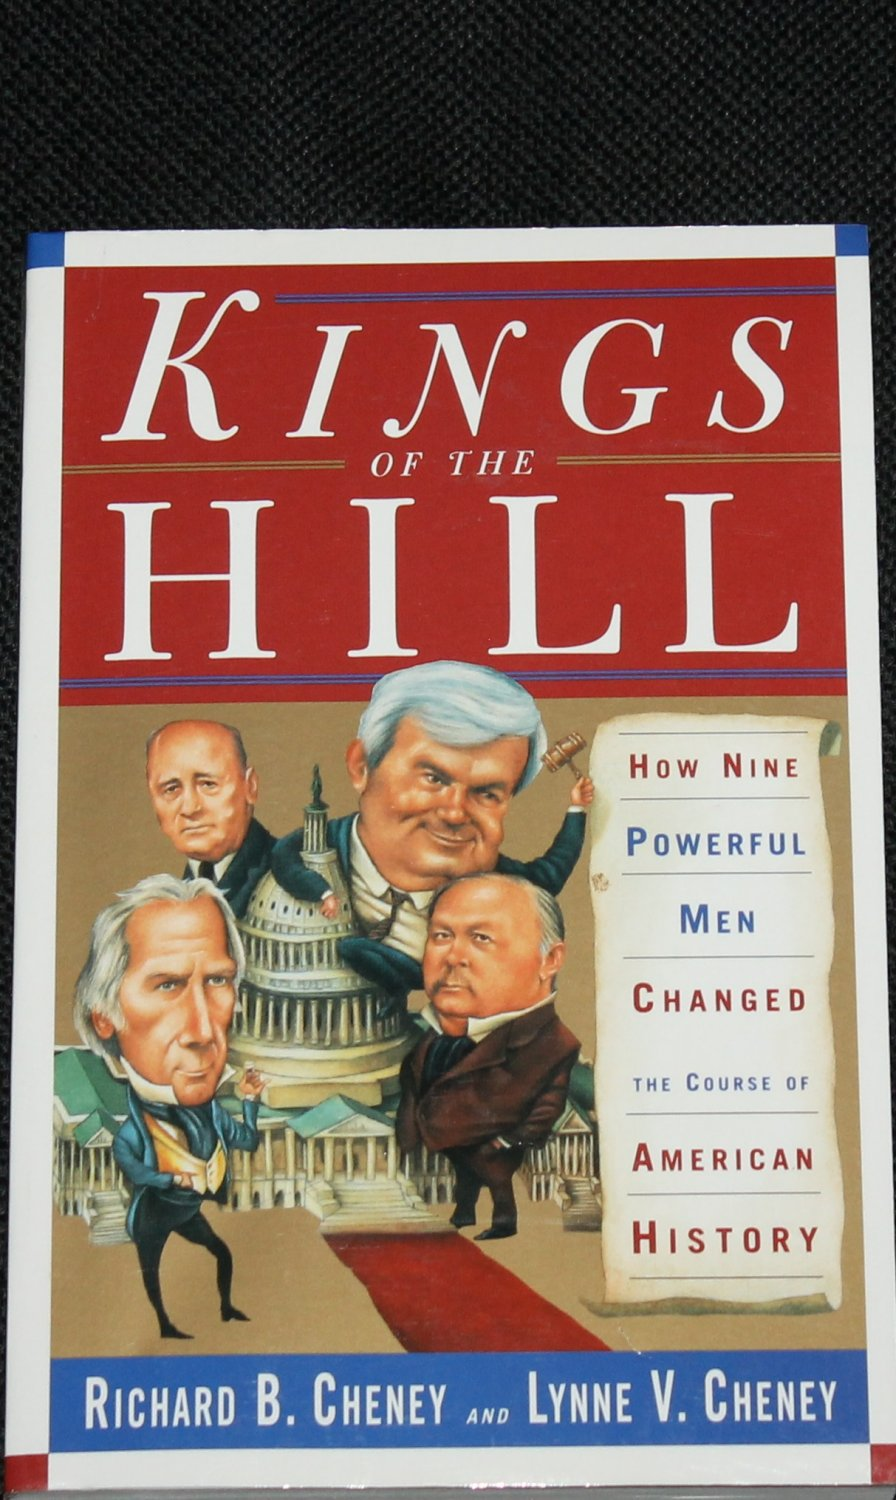 Kings of the Hill - politics political paperback book by Richard B. Cheney & Lynne V. Cheney